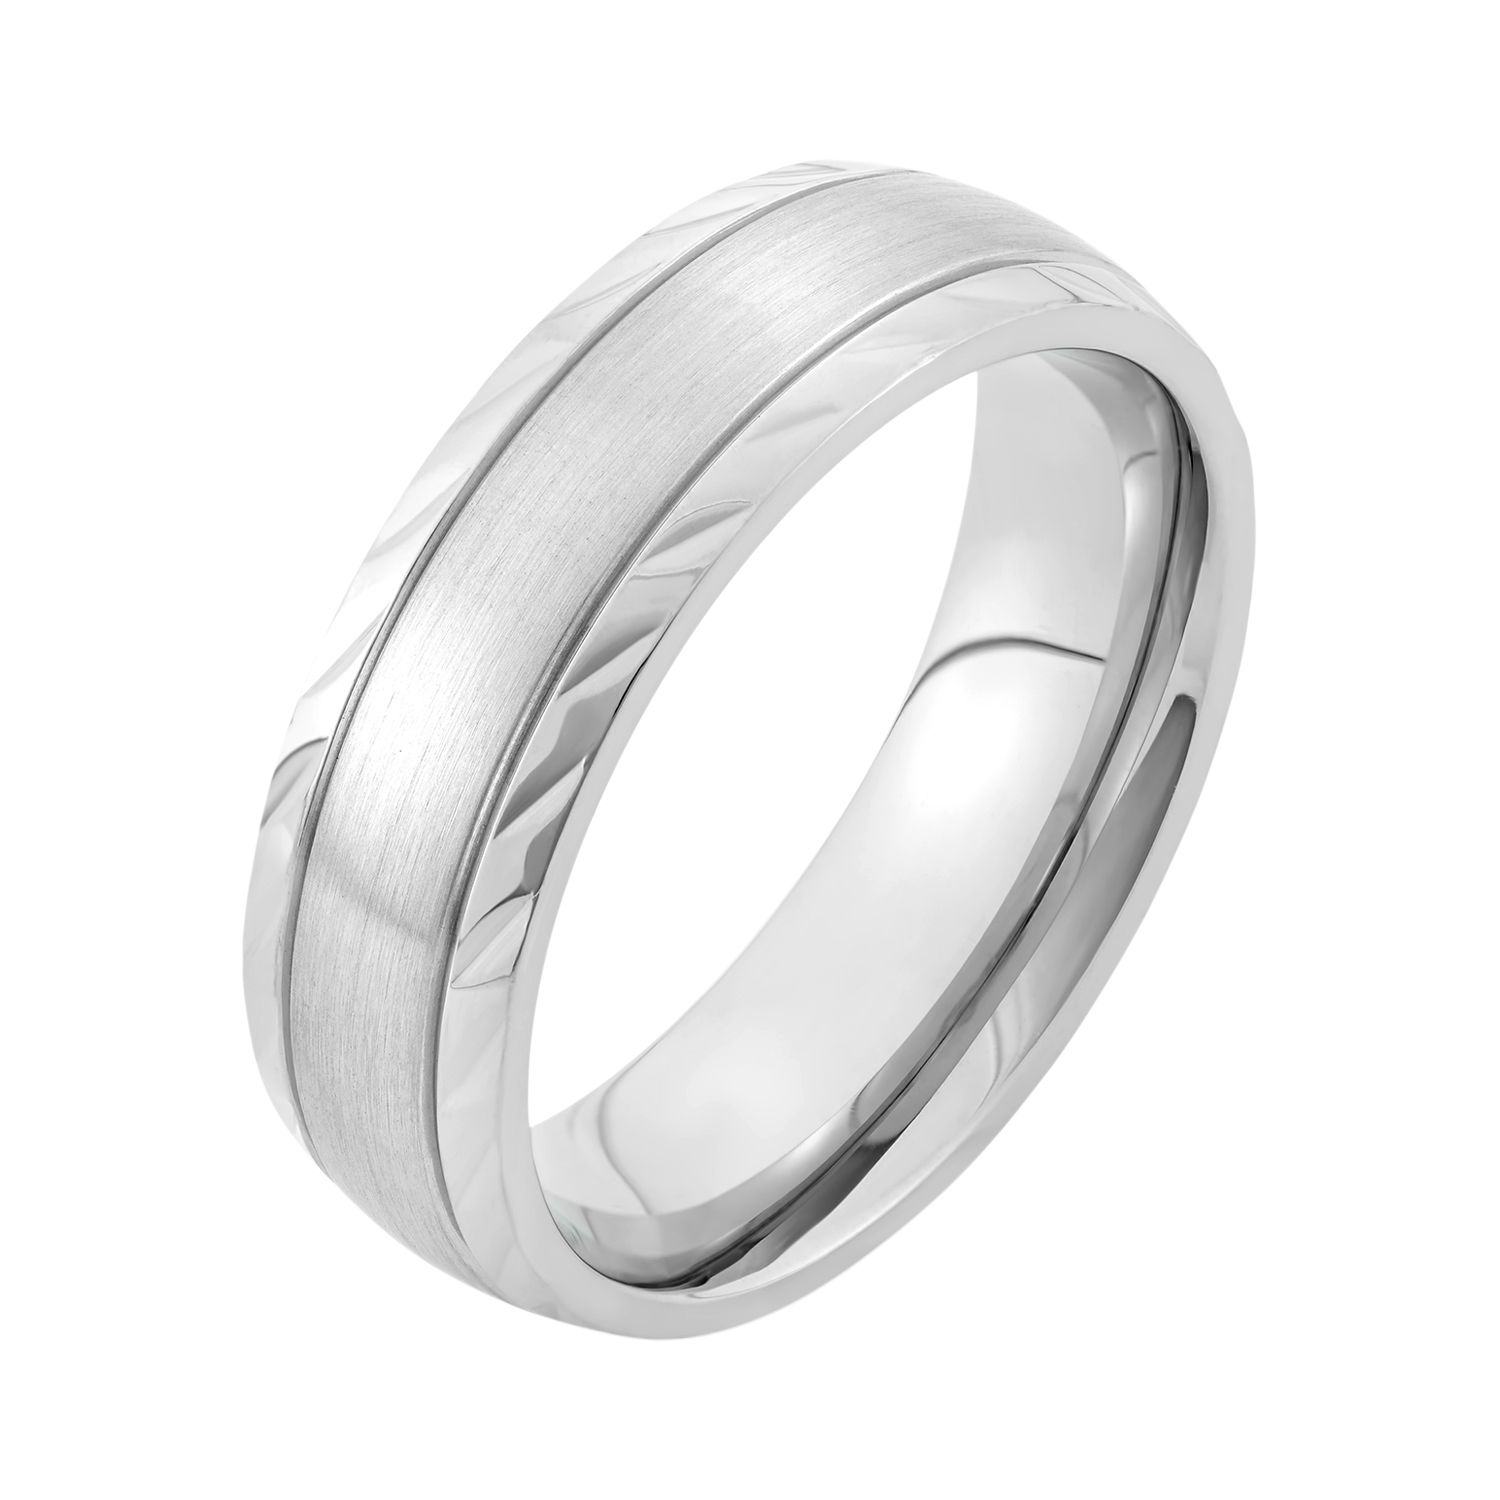 black steel new women for high and fashion products ring wedding men jewelry usa rings quality titanium